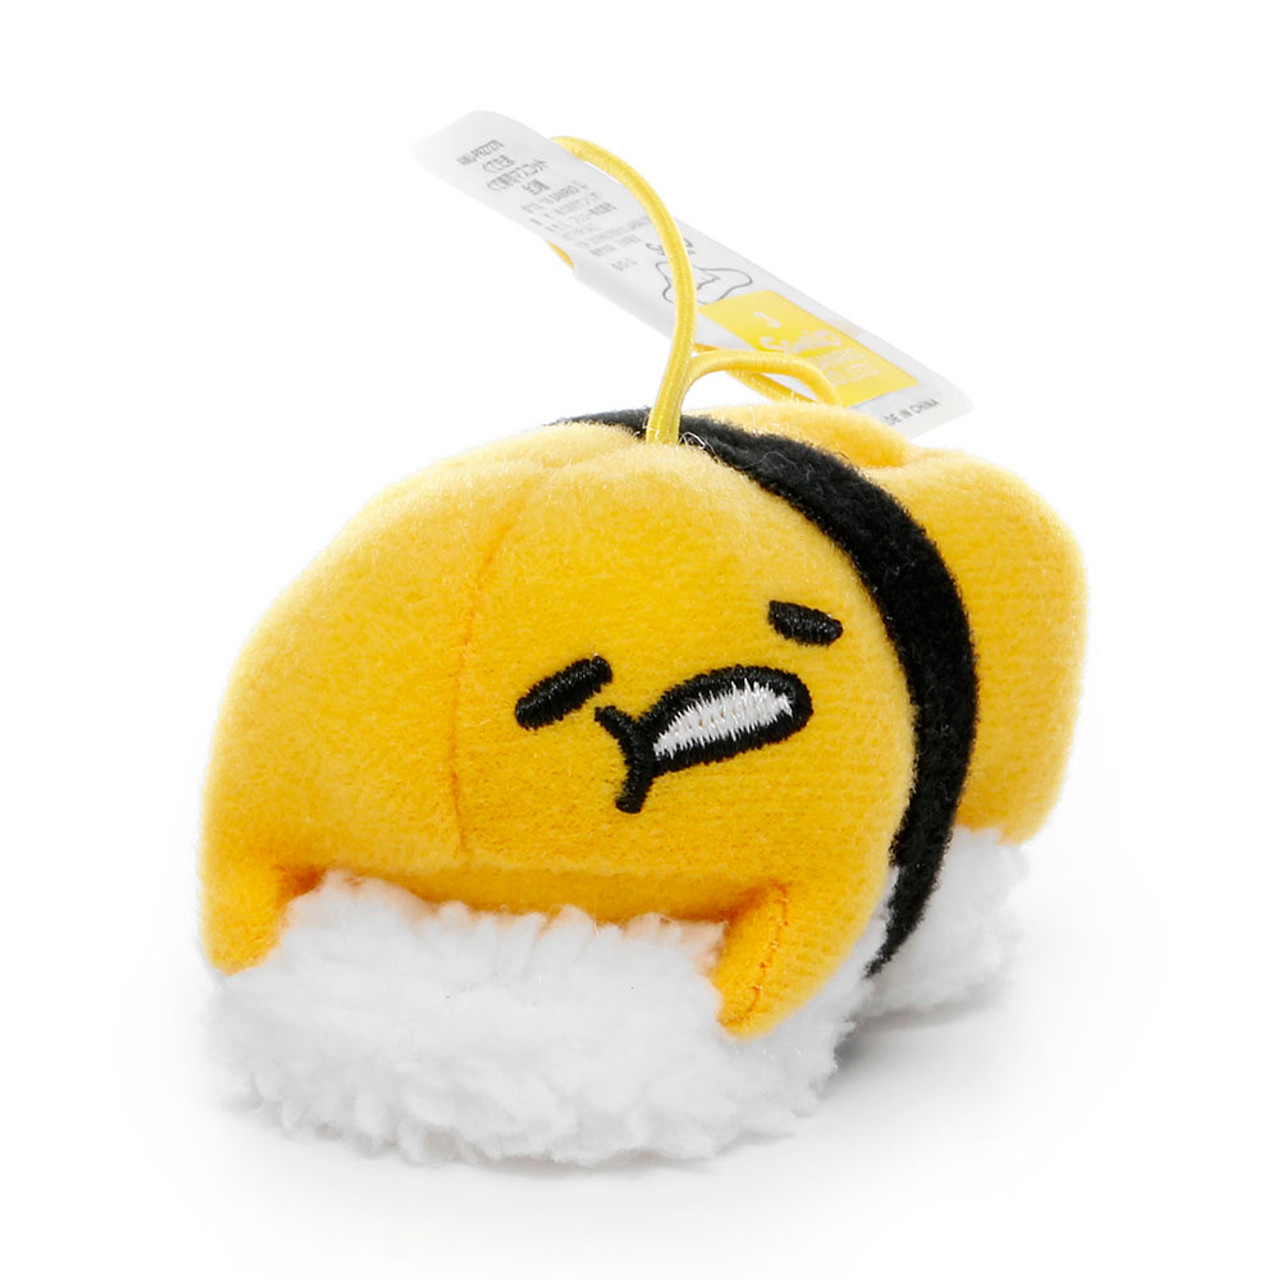 Sanrio Gudetama Lazy Egg Sushi Mascot Plush Charms - Yolk Sushi ( Side View )